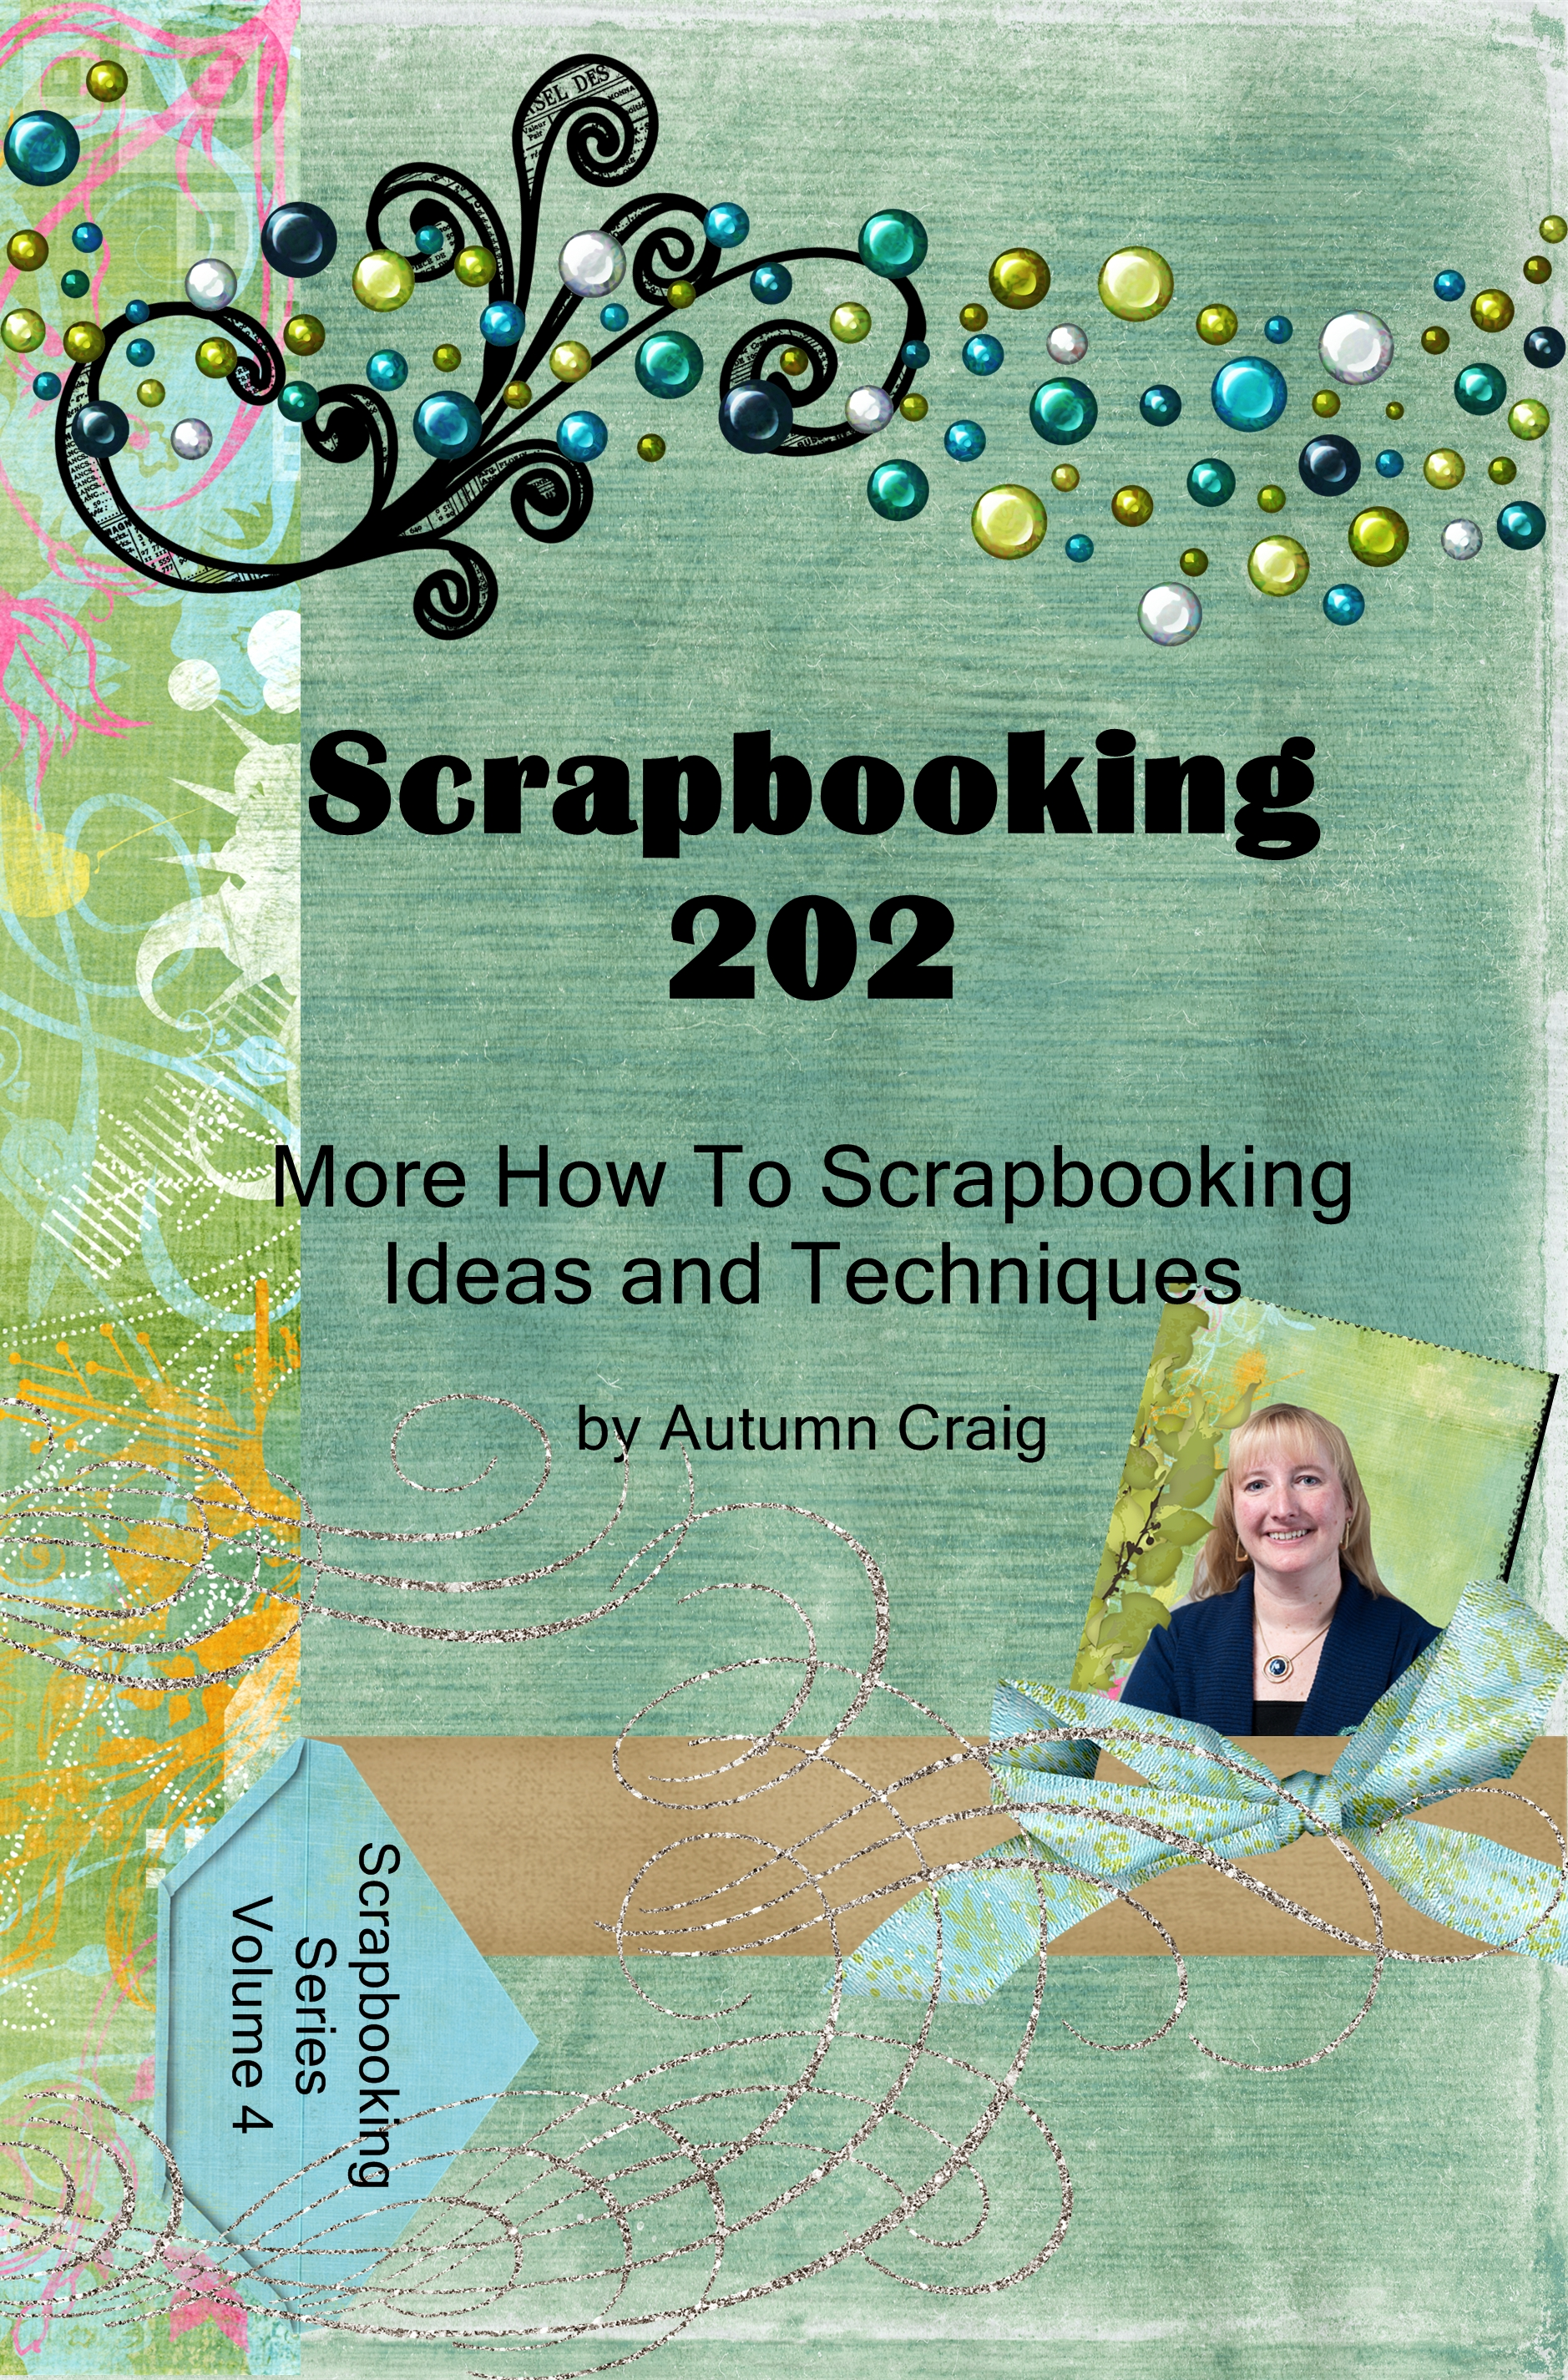 scrapbooking 202 cover